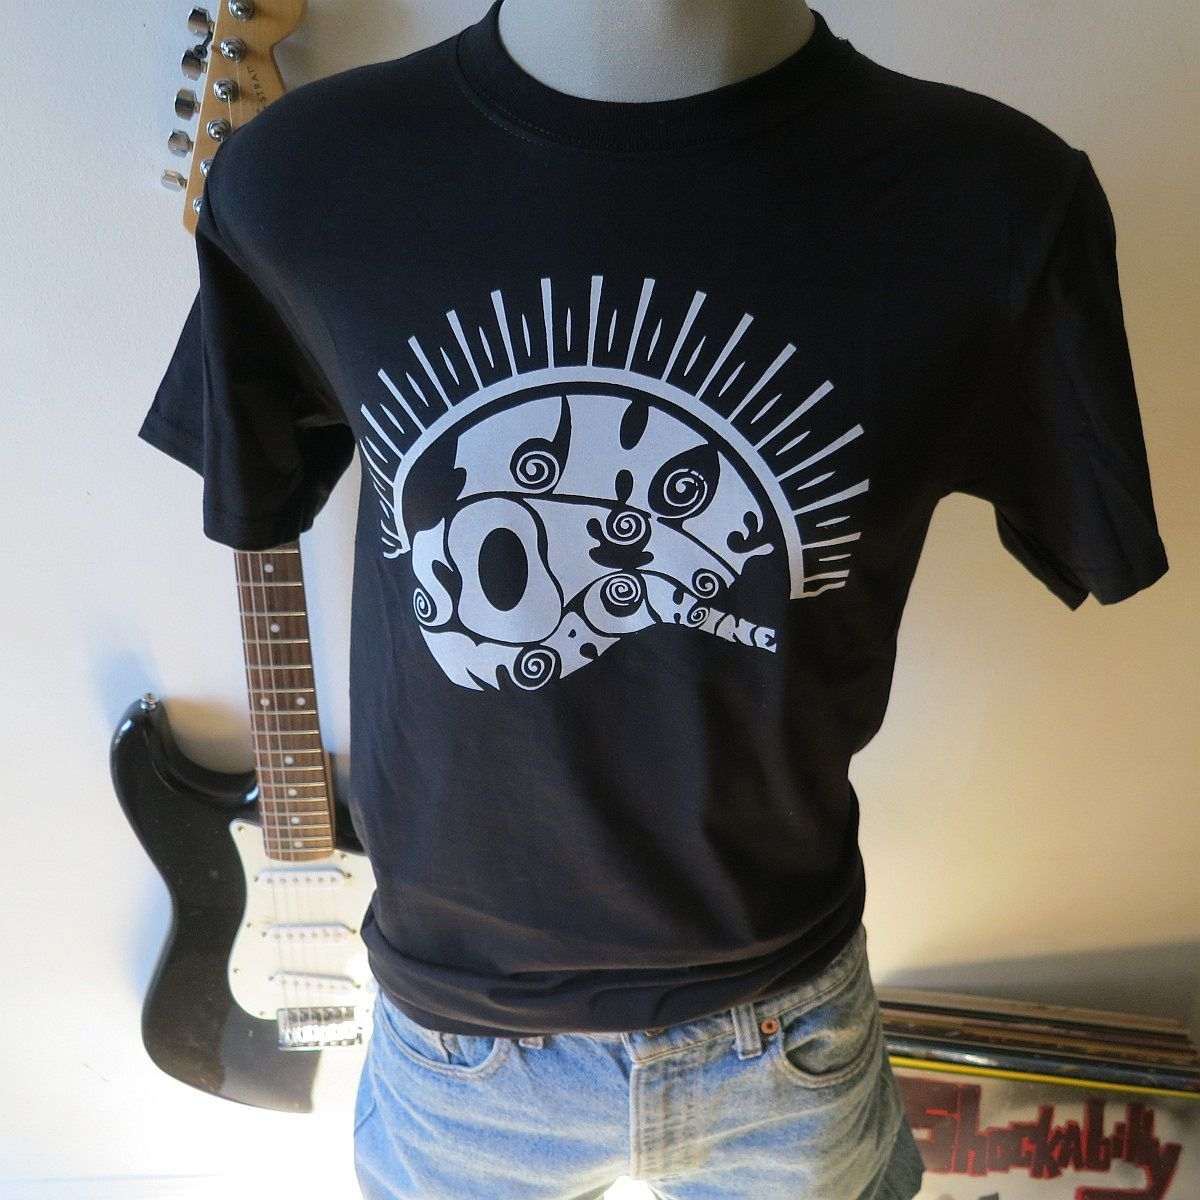 Soft machine tee t shirt screen print short sleeve shirt for Vintage screen print t shirts